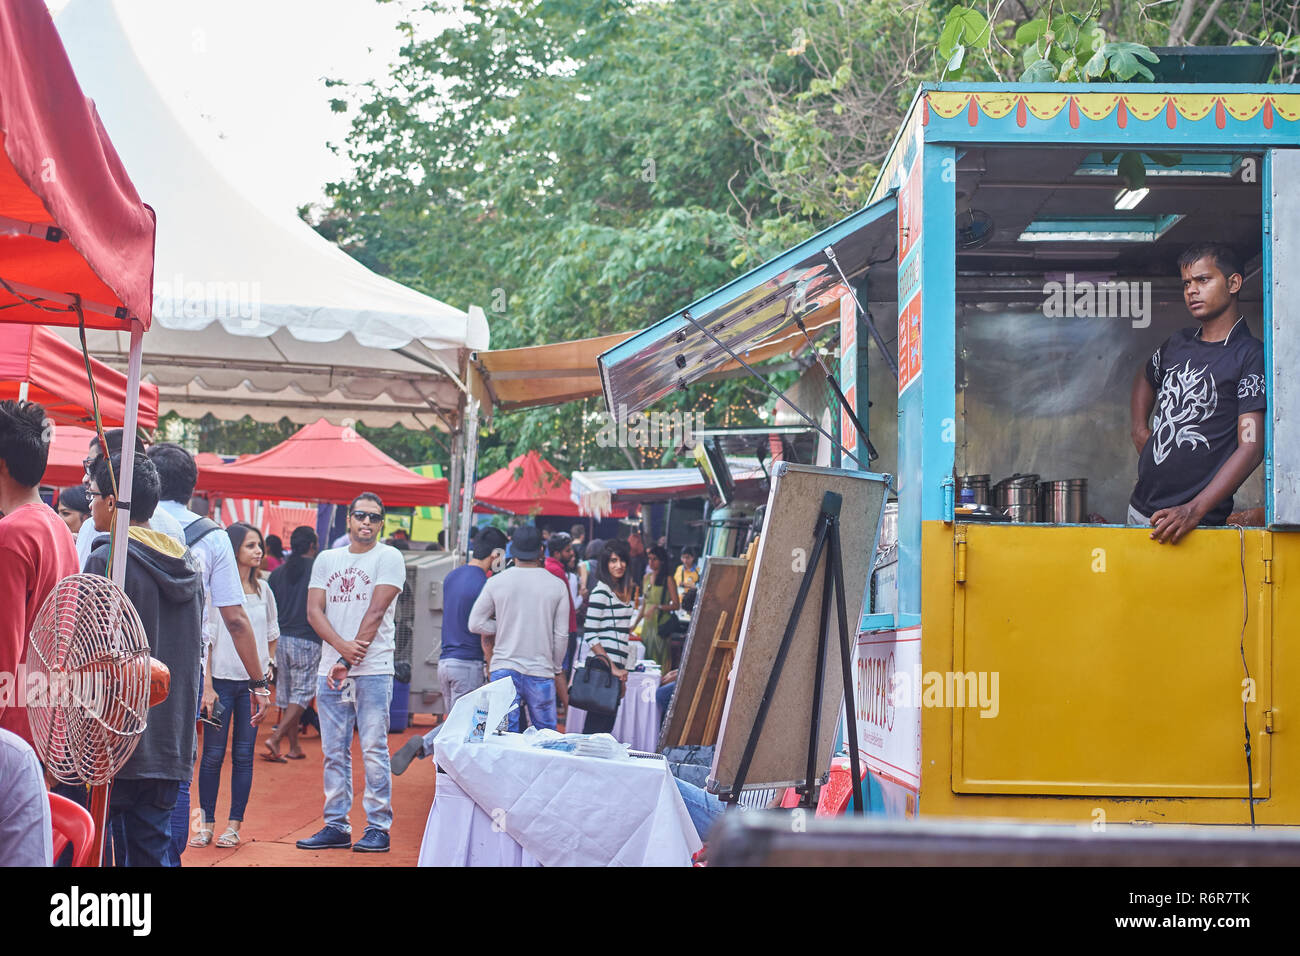 Man relaxing in his food truck at a food festival in Bangalore. - Stock Image